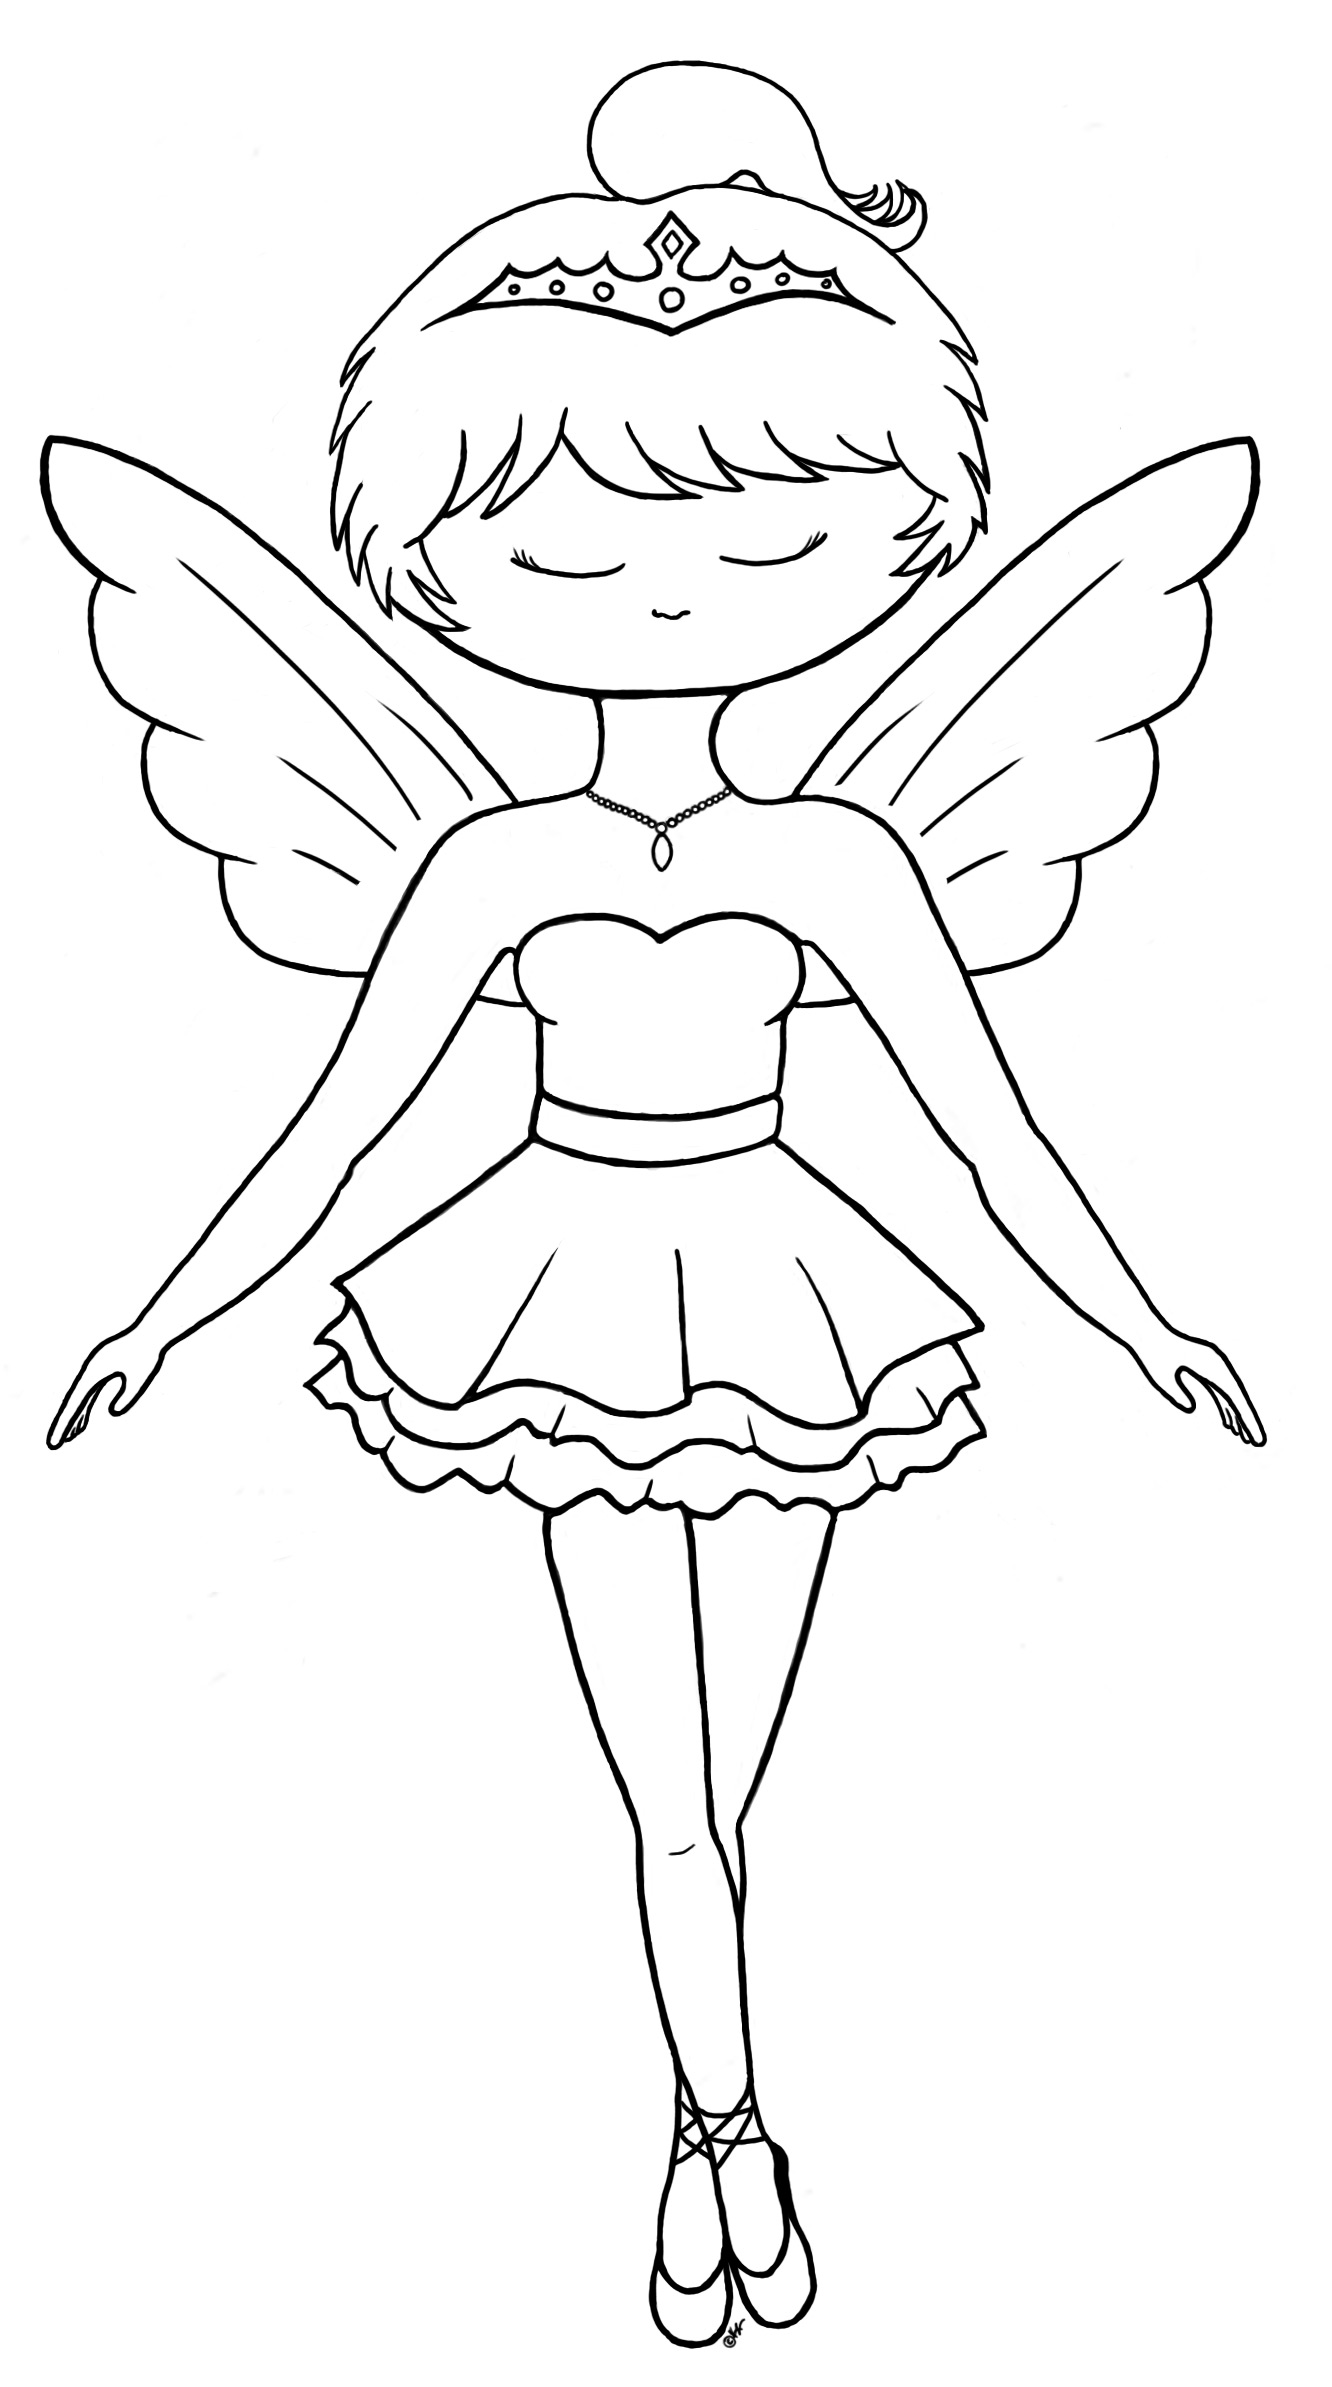 ballerina color printable ballet coloring pages for kids cool2bkids ballerina color 1 1